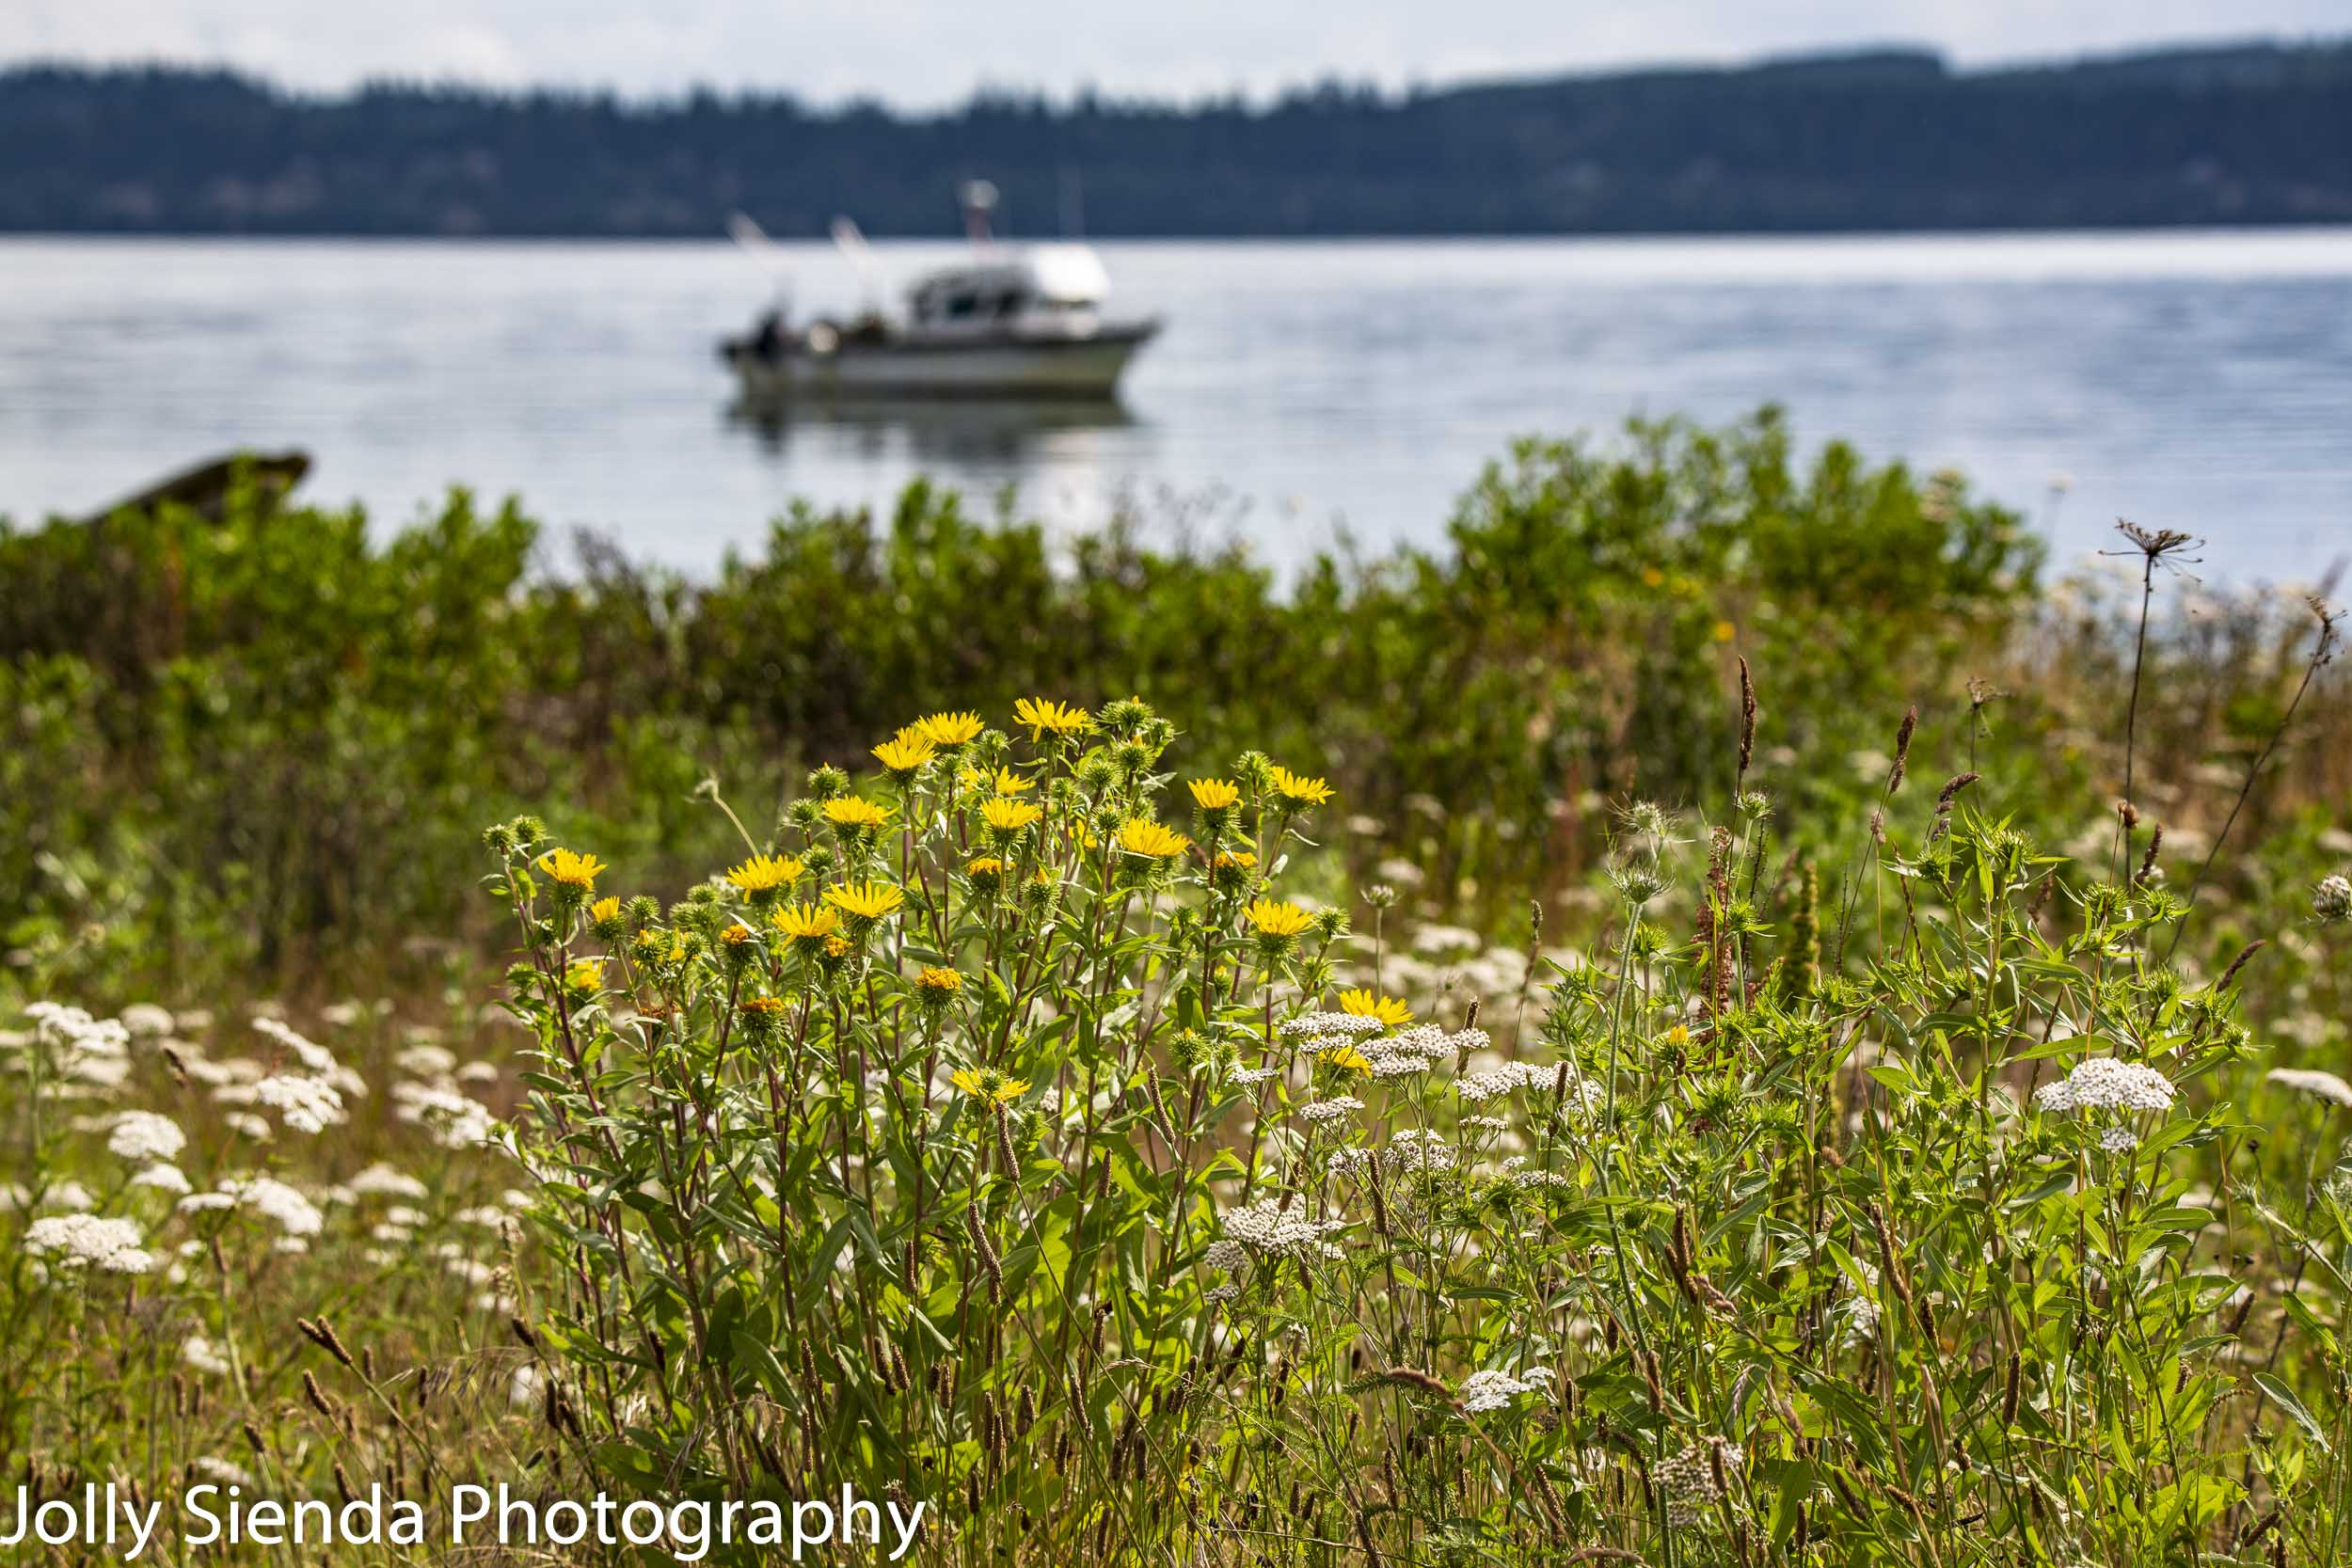 Seagrass and daisies and a fishing boat